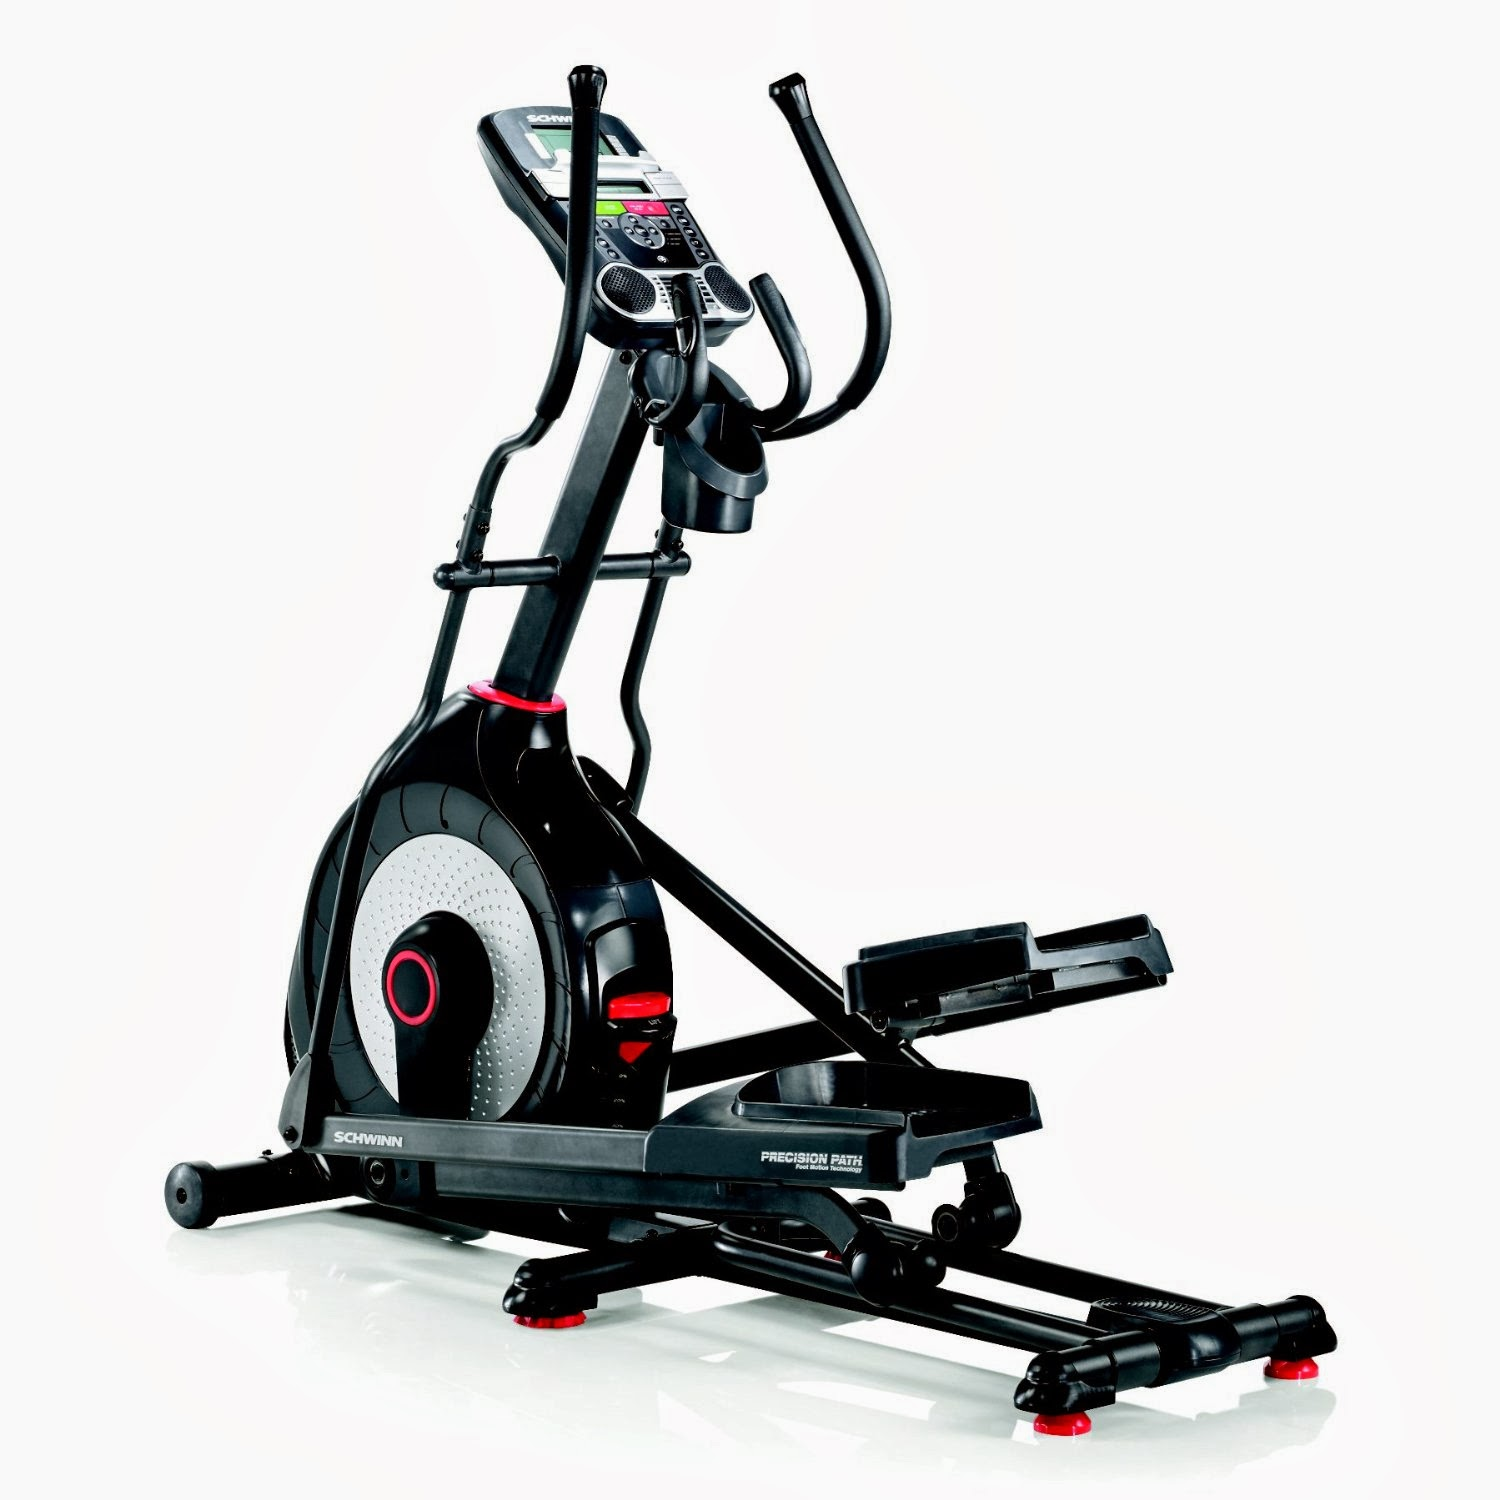 Schwinn 470 Elliptical Trainer, compare features & differences with Sole E95